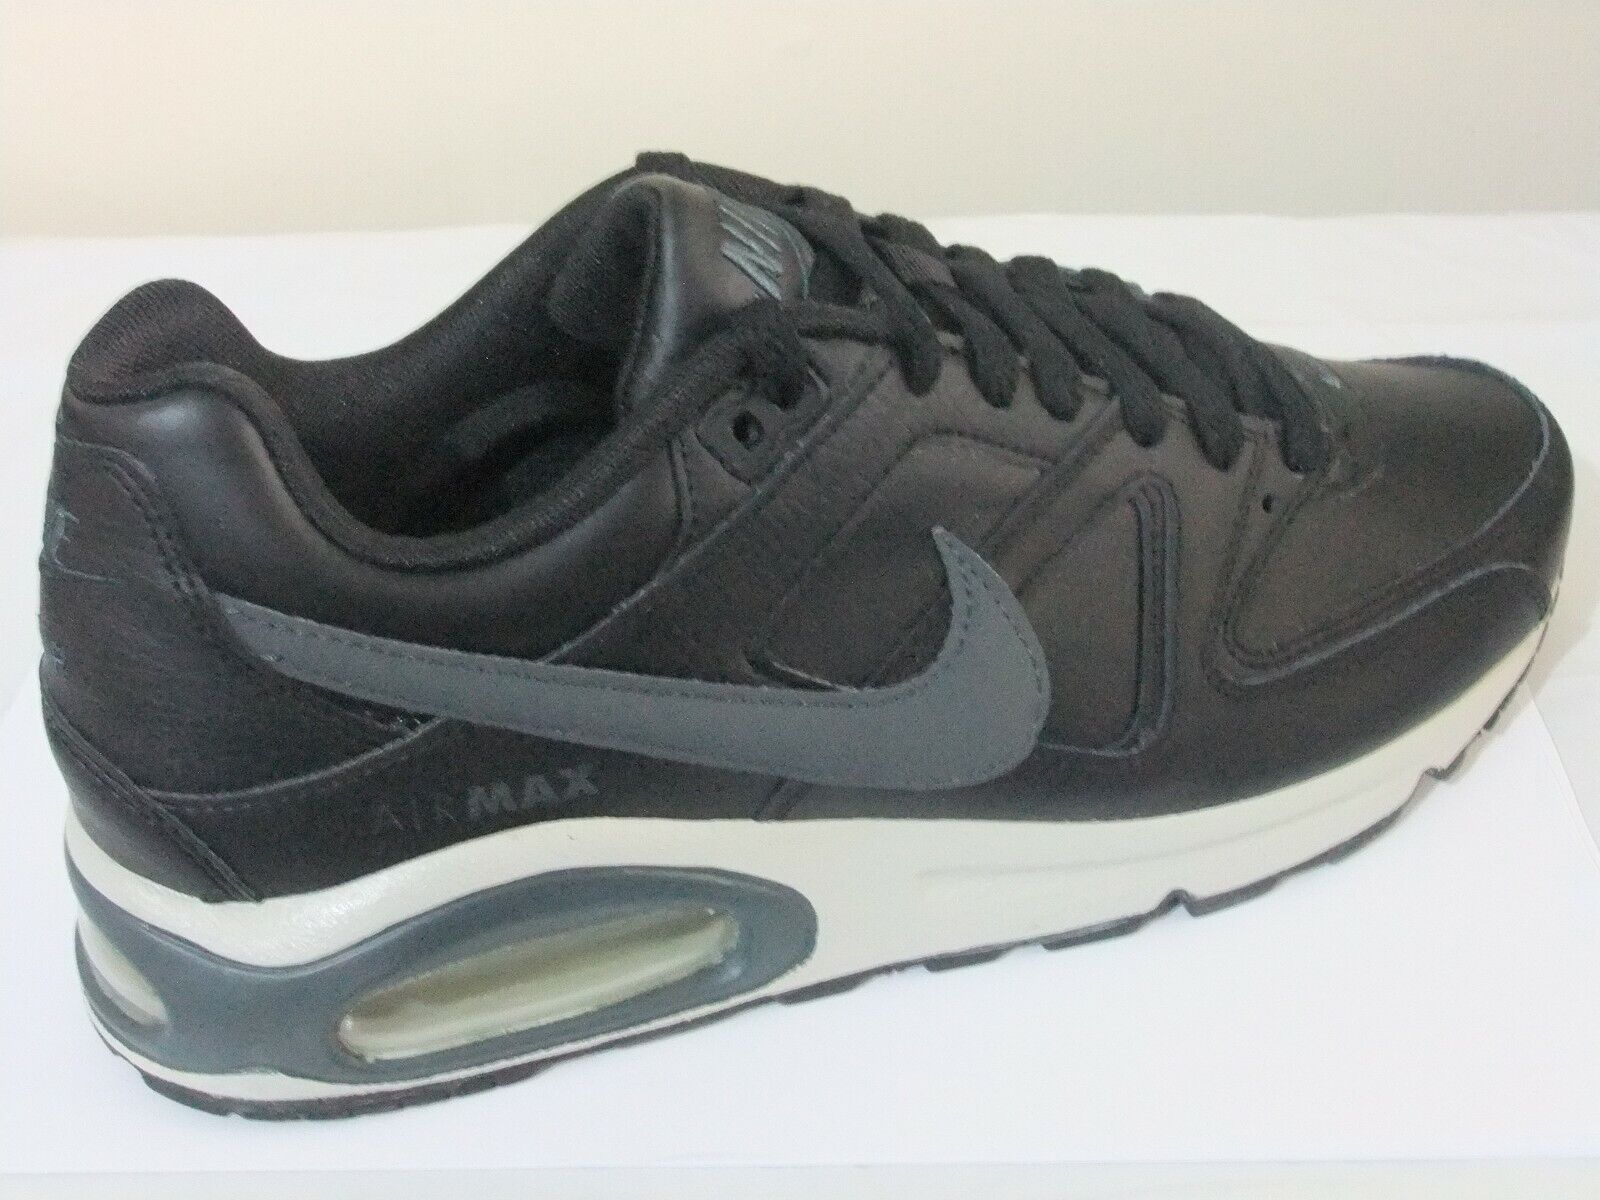 NIKE AIR MAX COMMAND LEATHER MENS SHOES TRAINERS UK SIZE 7 12 749760 001